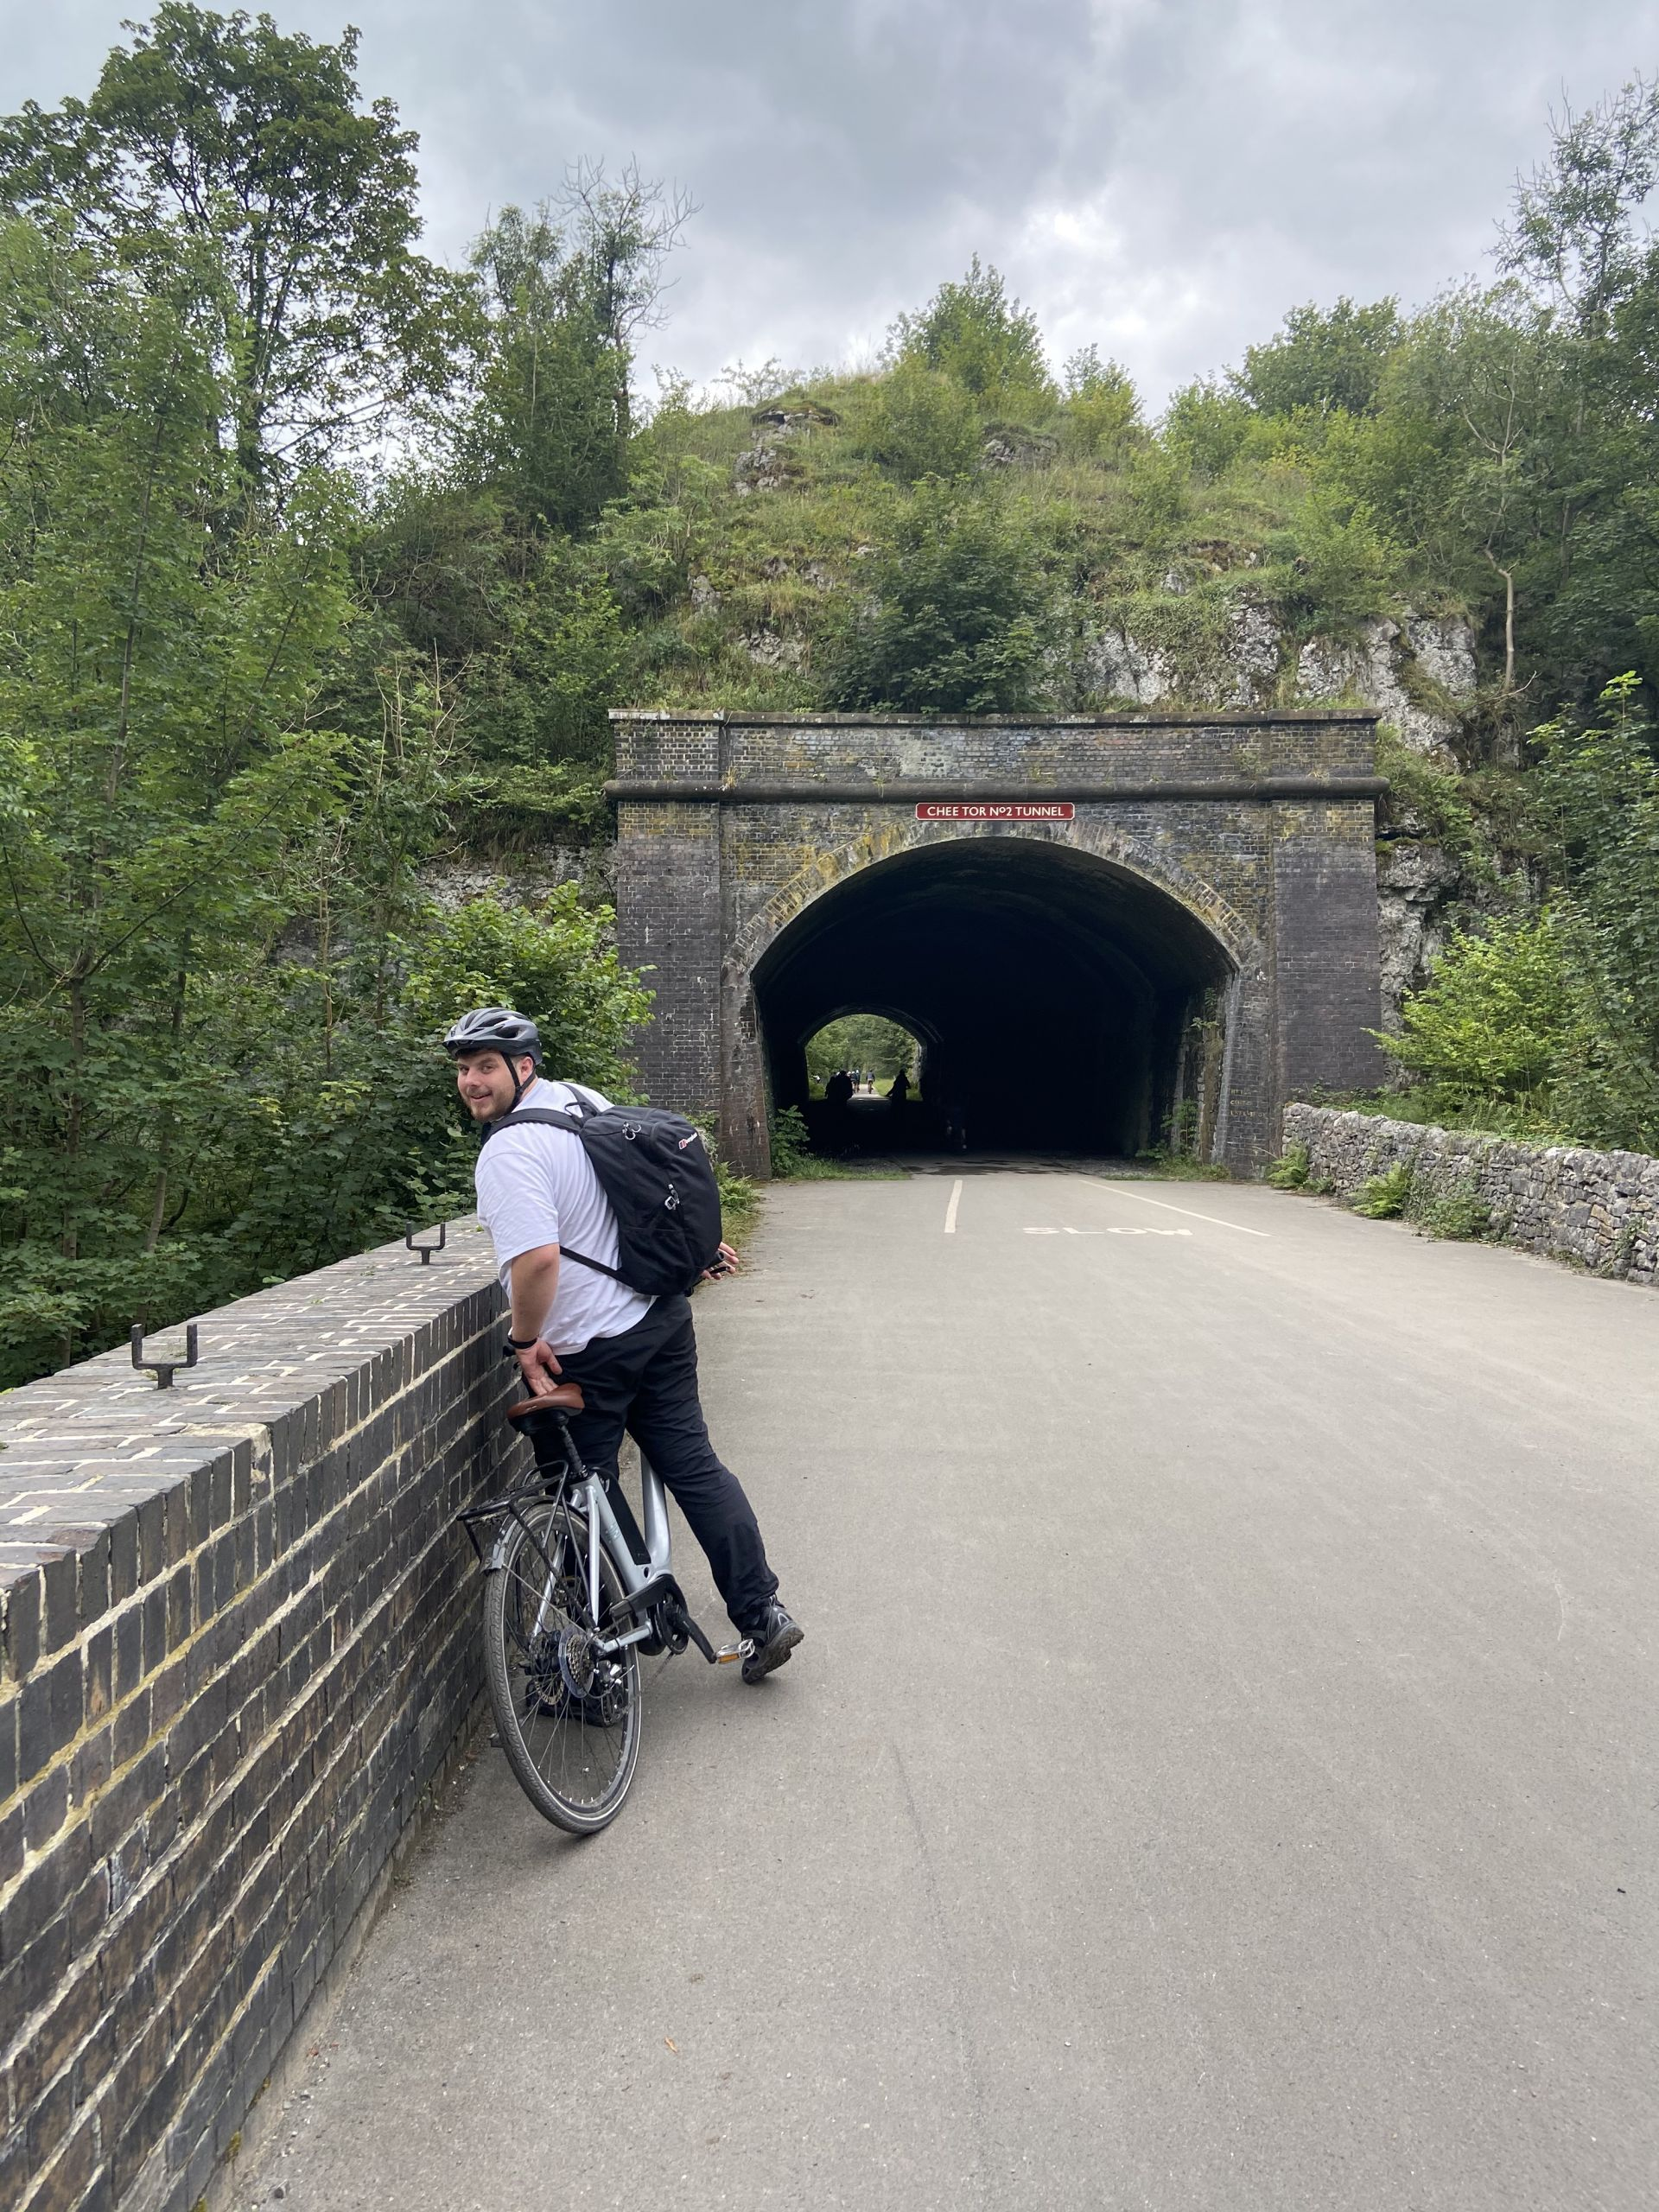 cycling the Monsal trail with one of the tunnels in the background